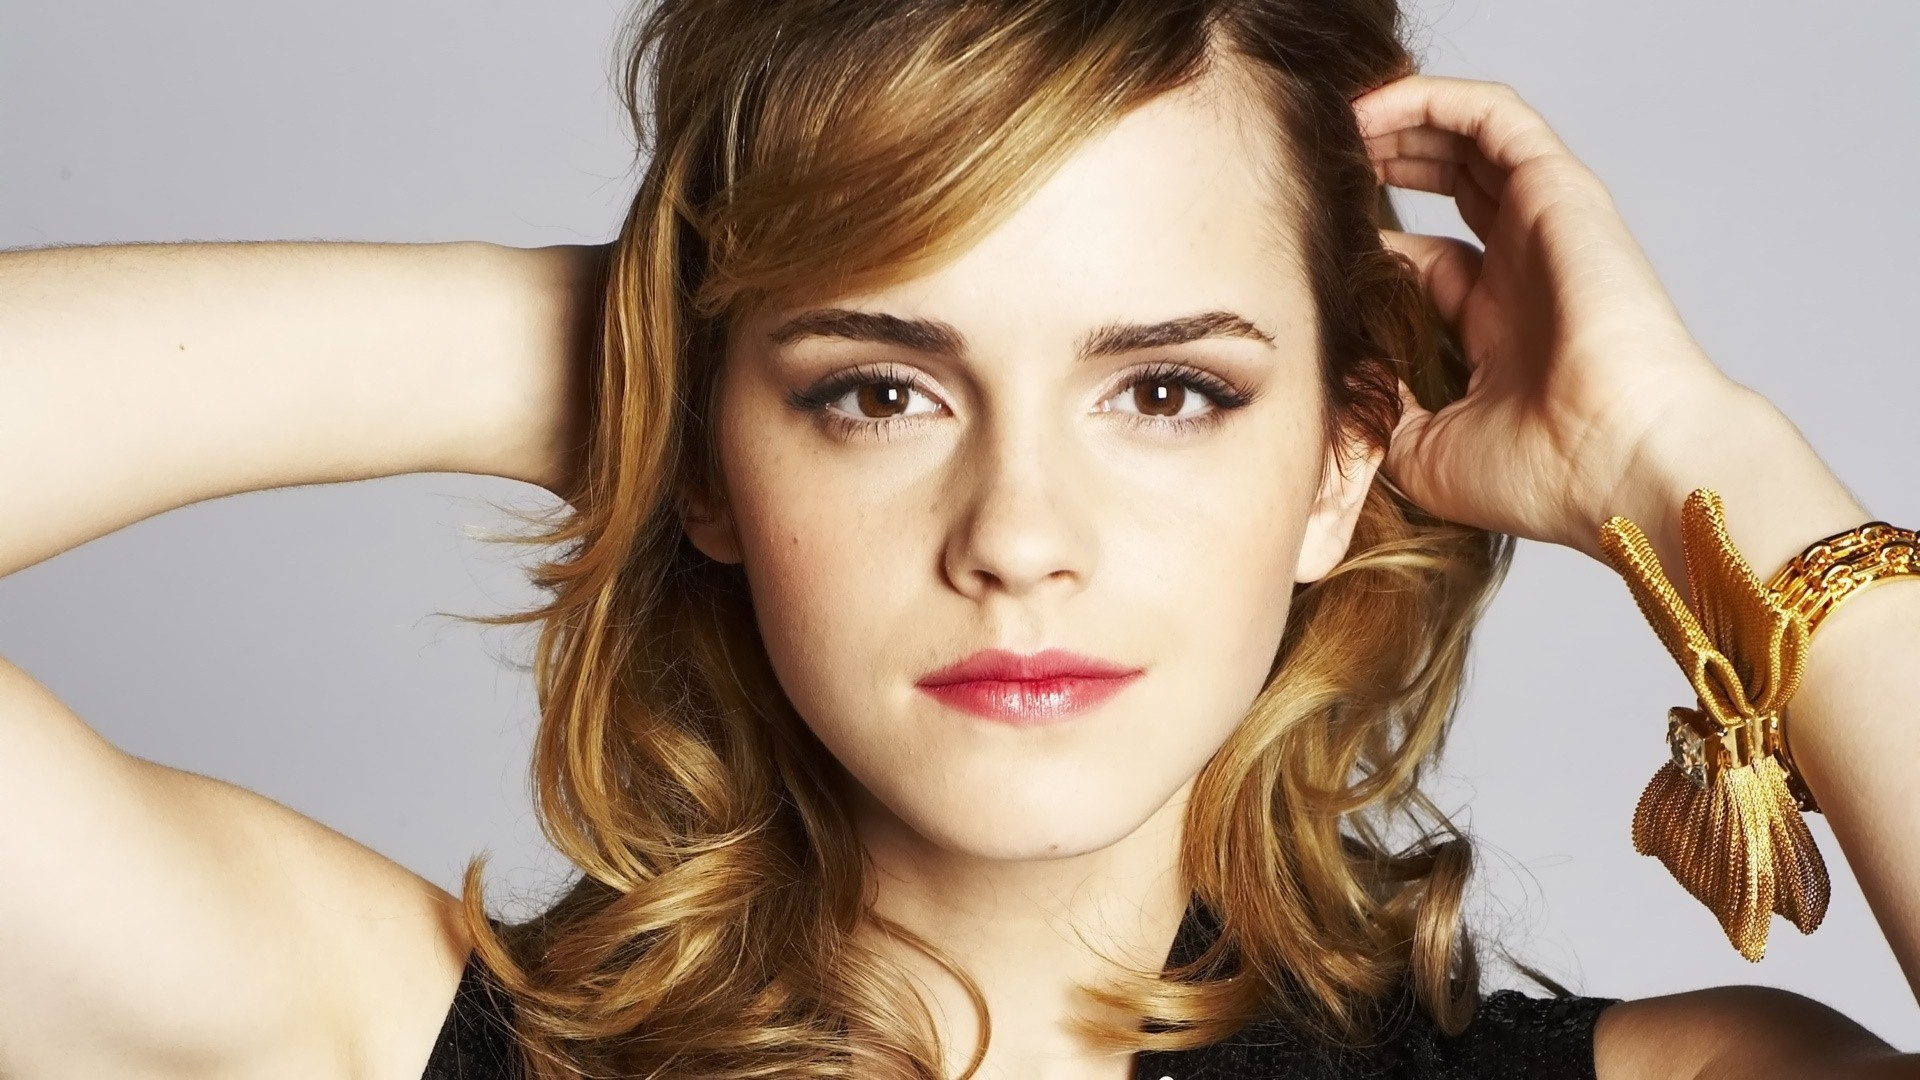 Top 10 Emma Watson Wallpapers